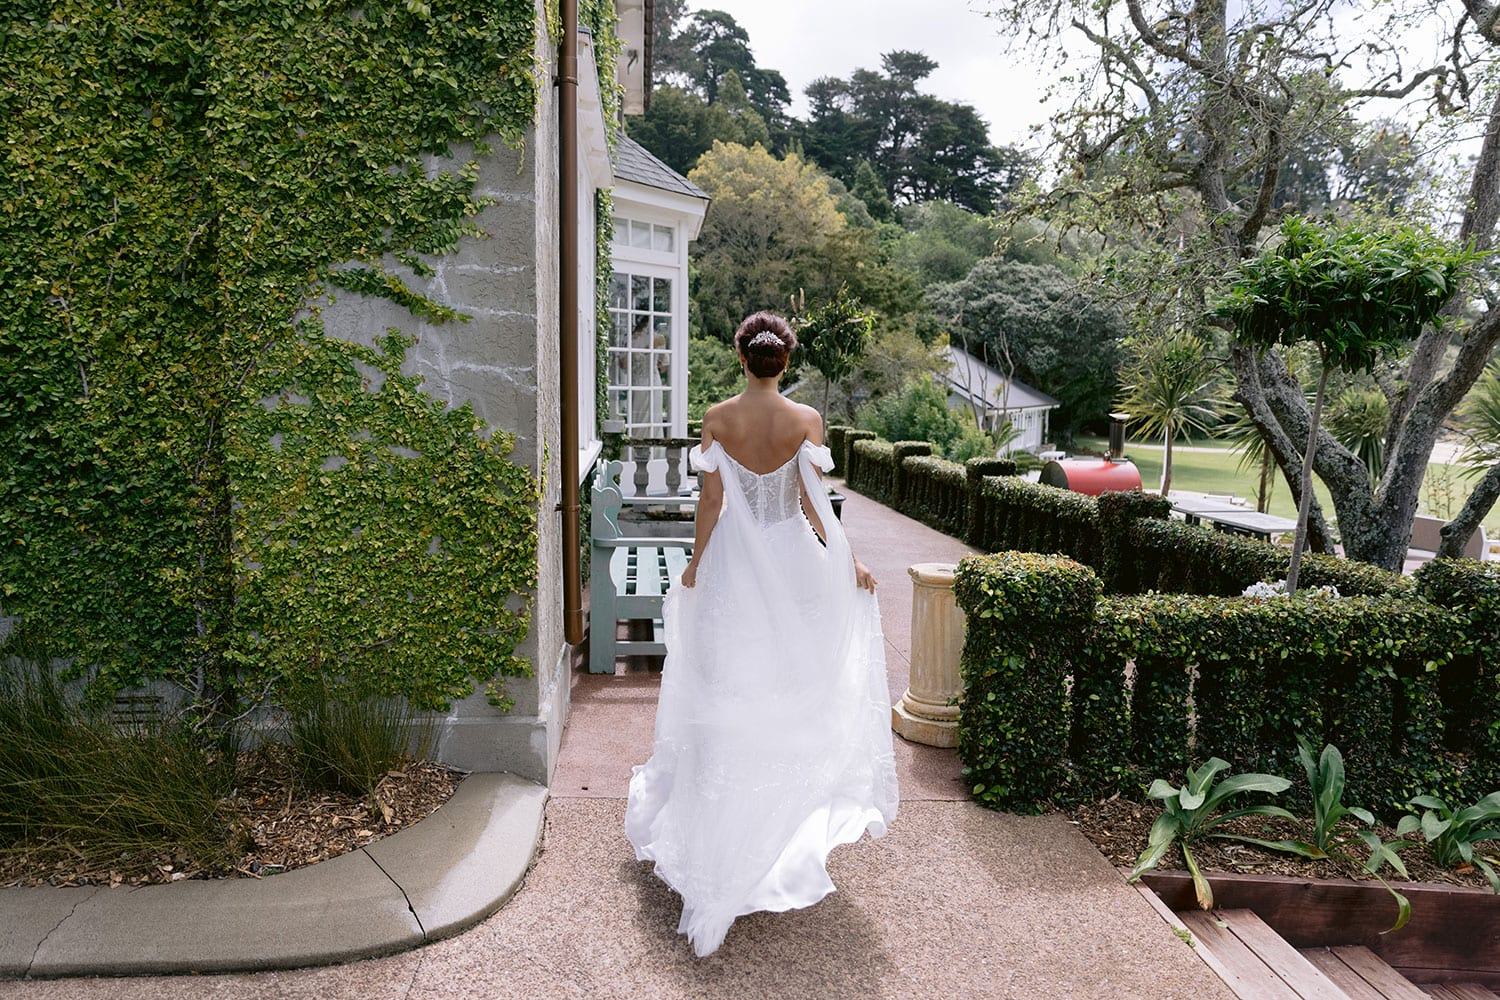 Evie Wedding gown from Vinka Design - Dreamy semi-sheer wedding dress with lace embroidery and beading. The bodice is structured, with hand-appliqued lace and draped with tulle to integrate modern elements with classic design. Model wearing gown walking showing back of dress.